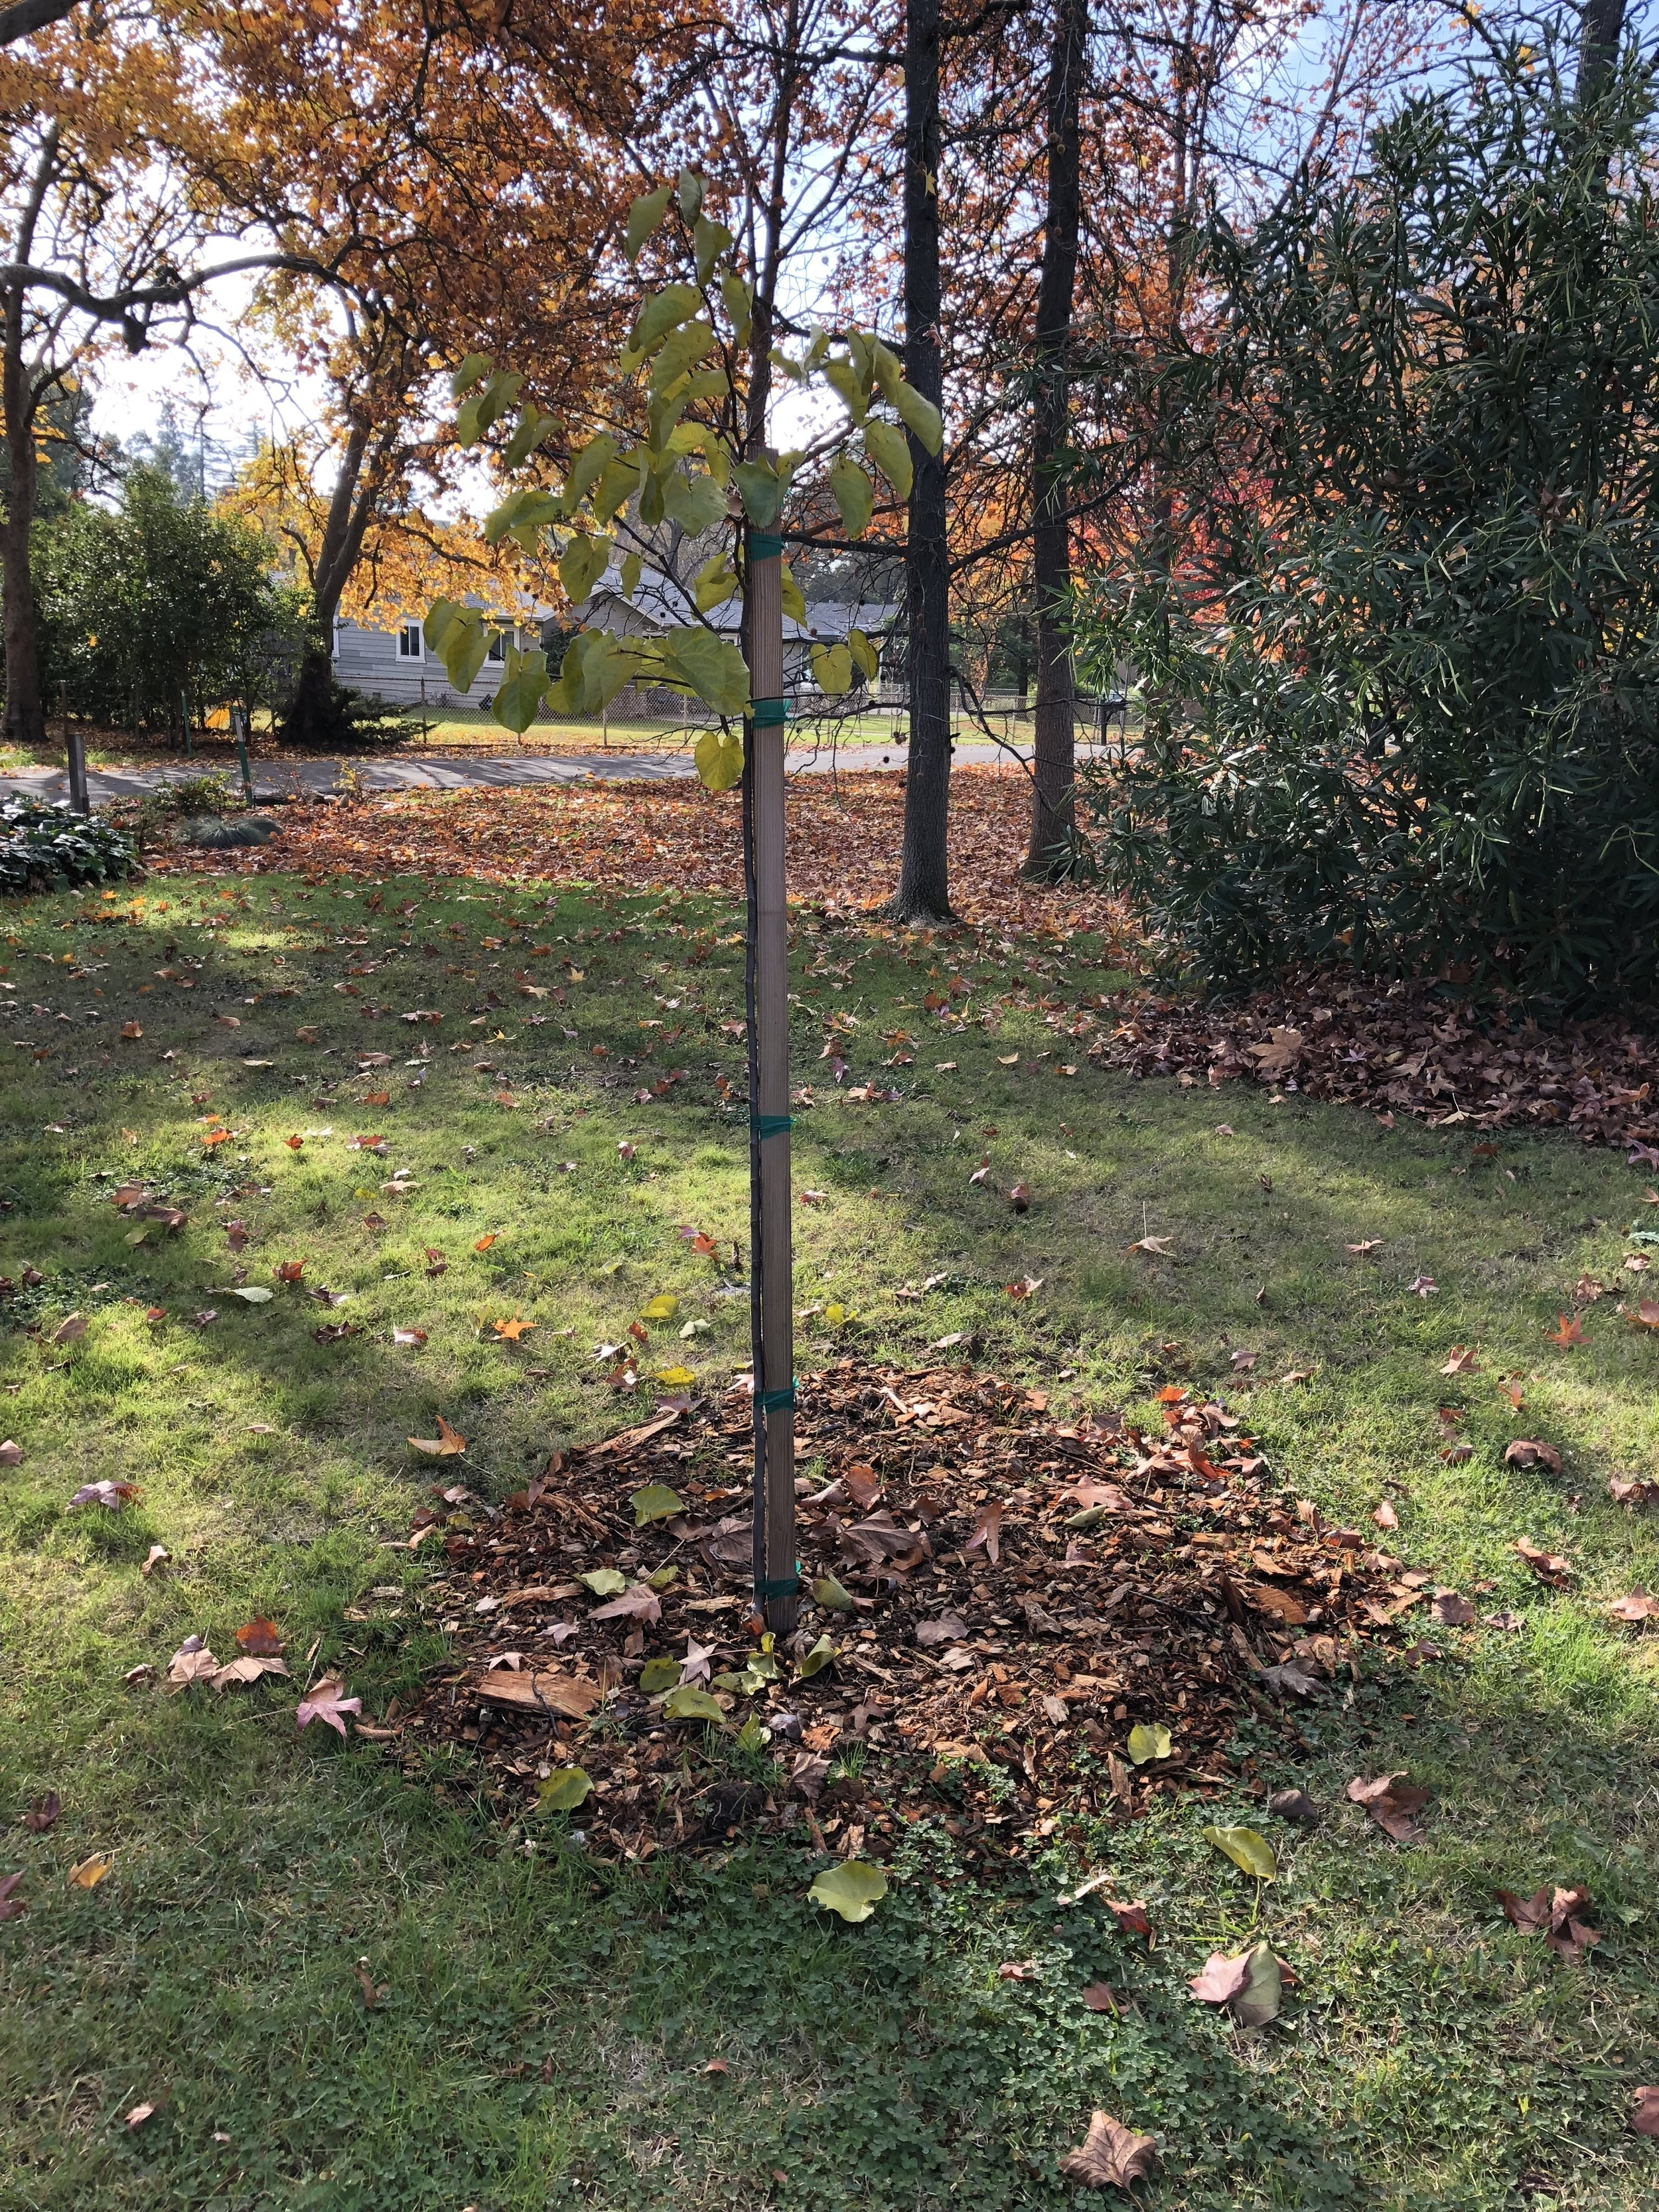 Our new redbud tree. She doesn't look like much now, but just give her a bit of time.